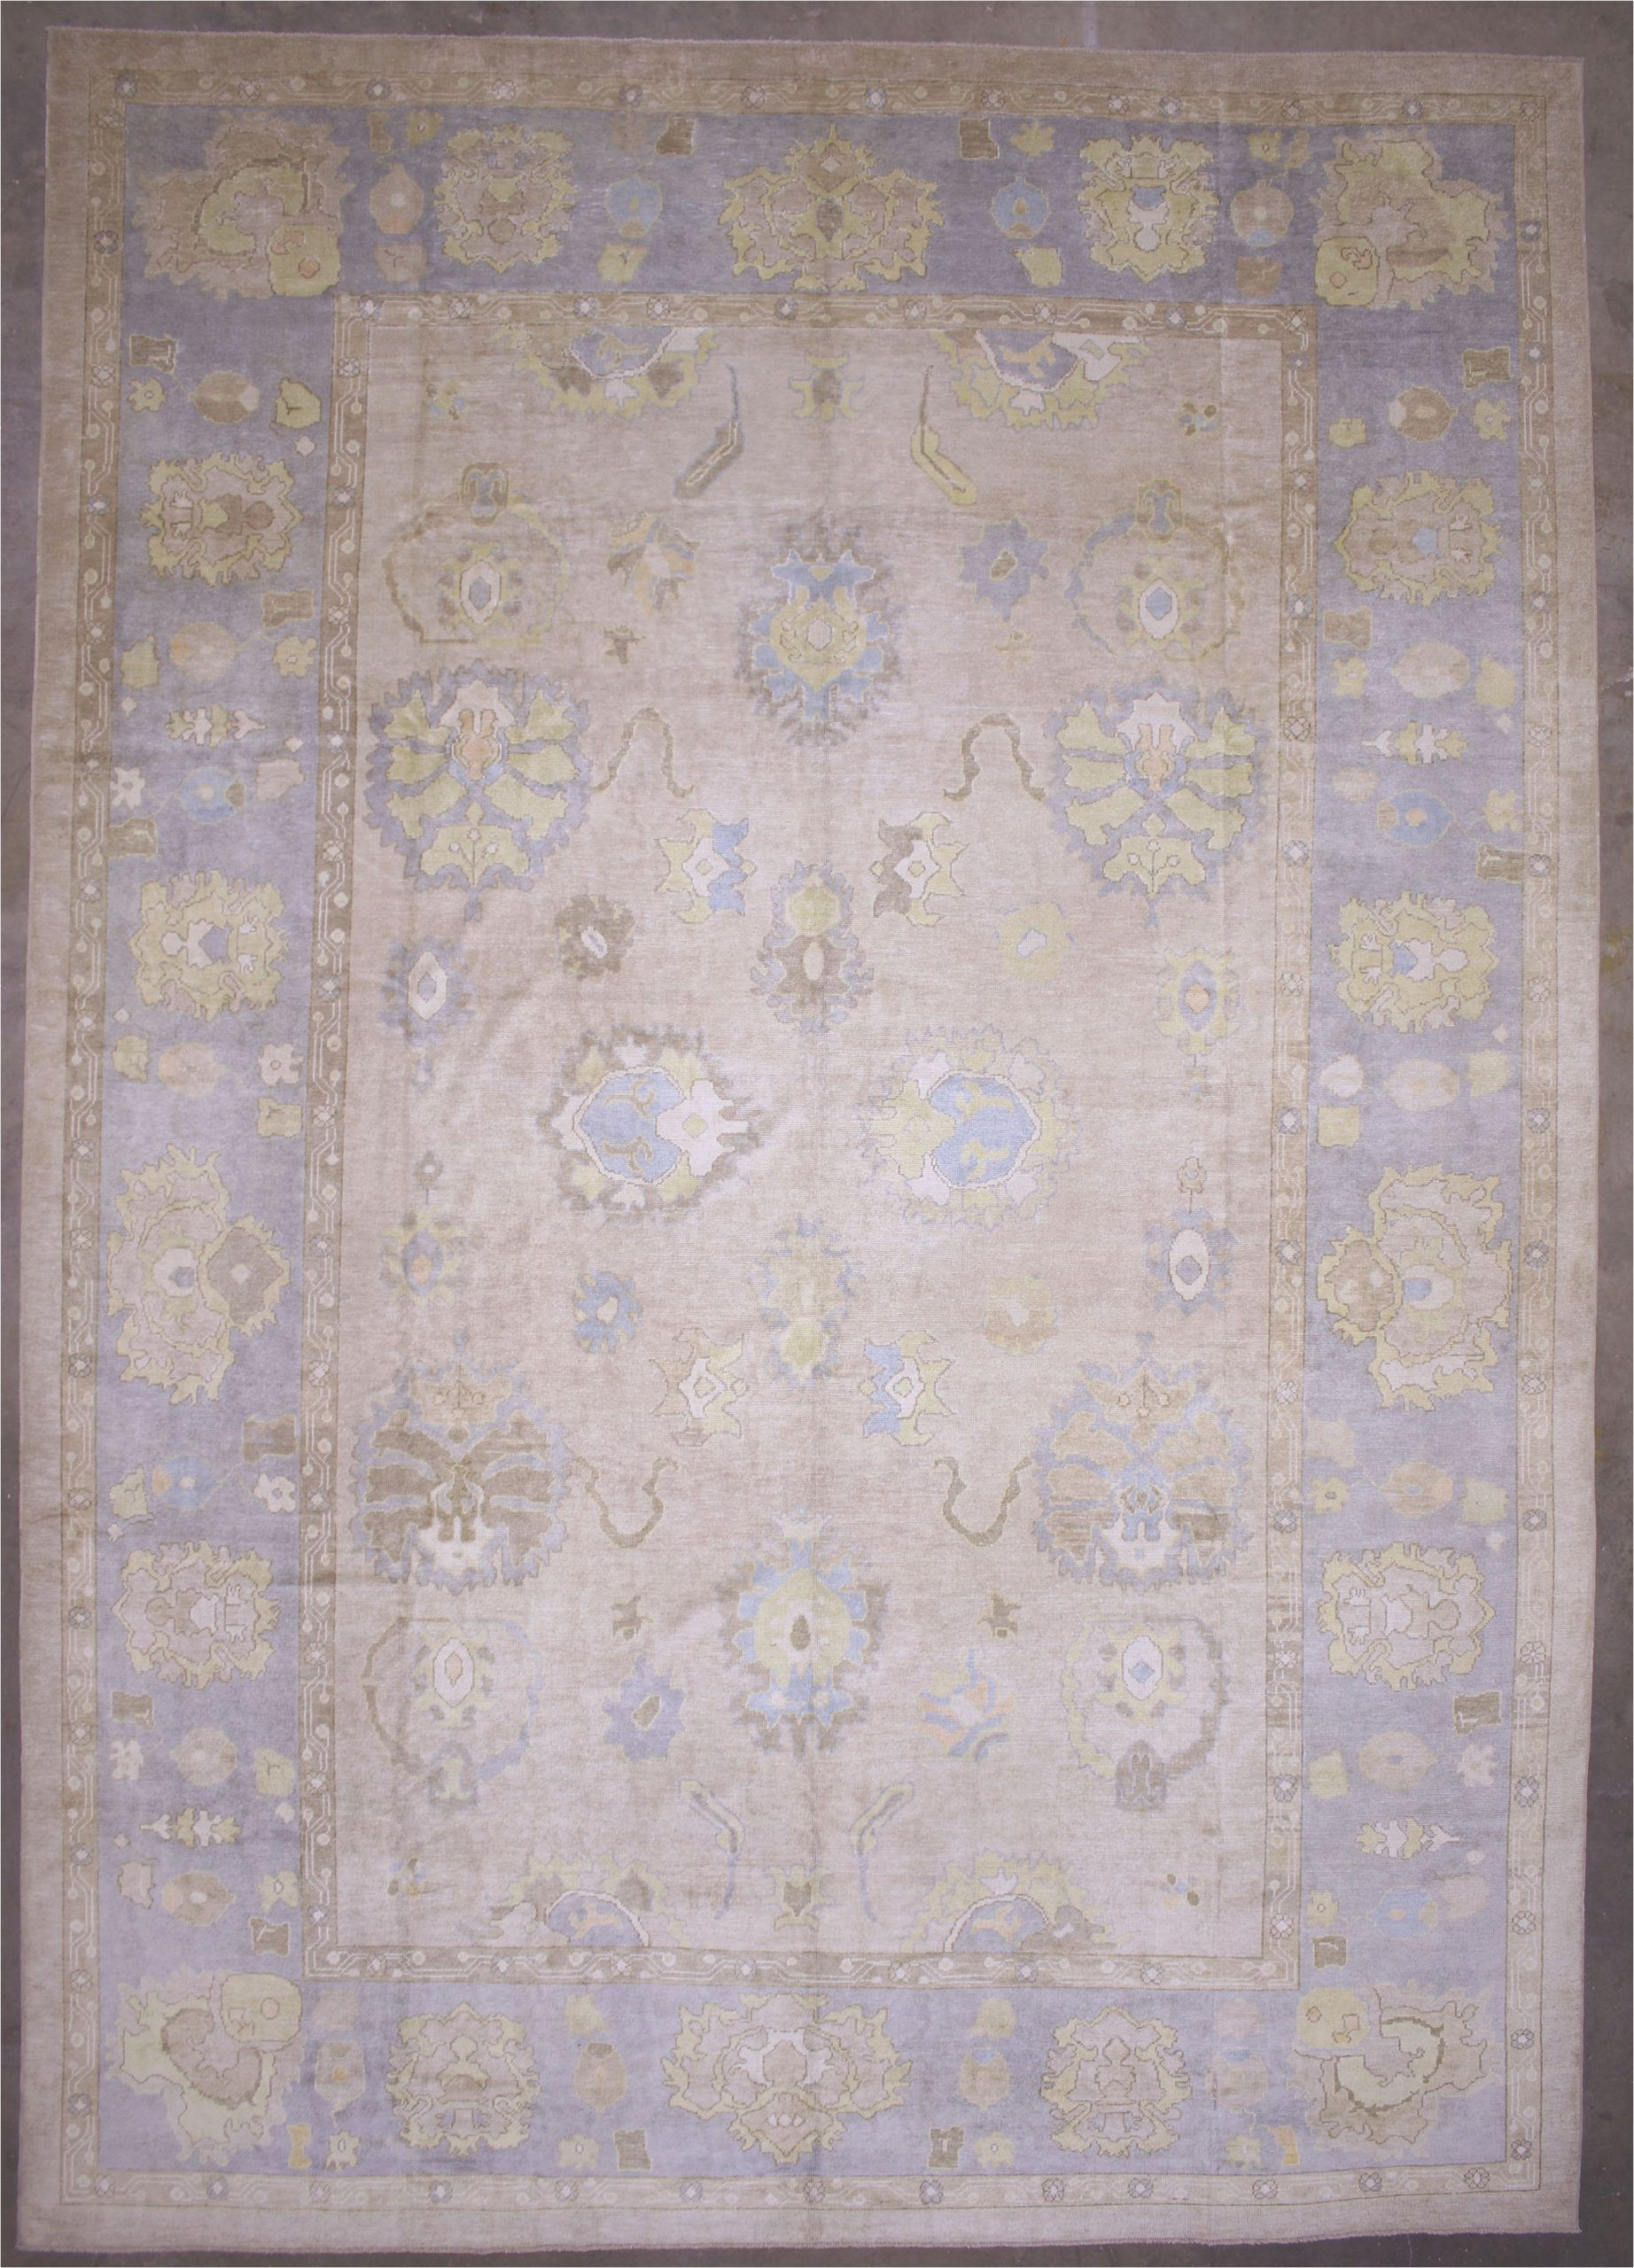 14 X 20 area Rug 14×20 Brown Modern Oushak area Rug